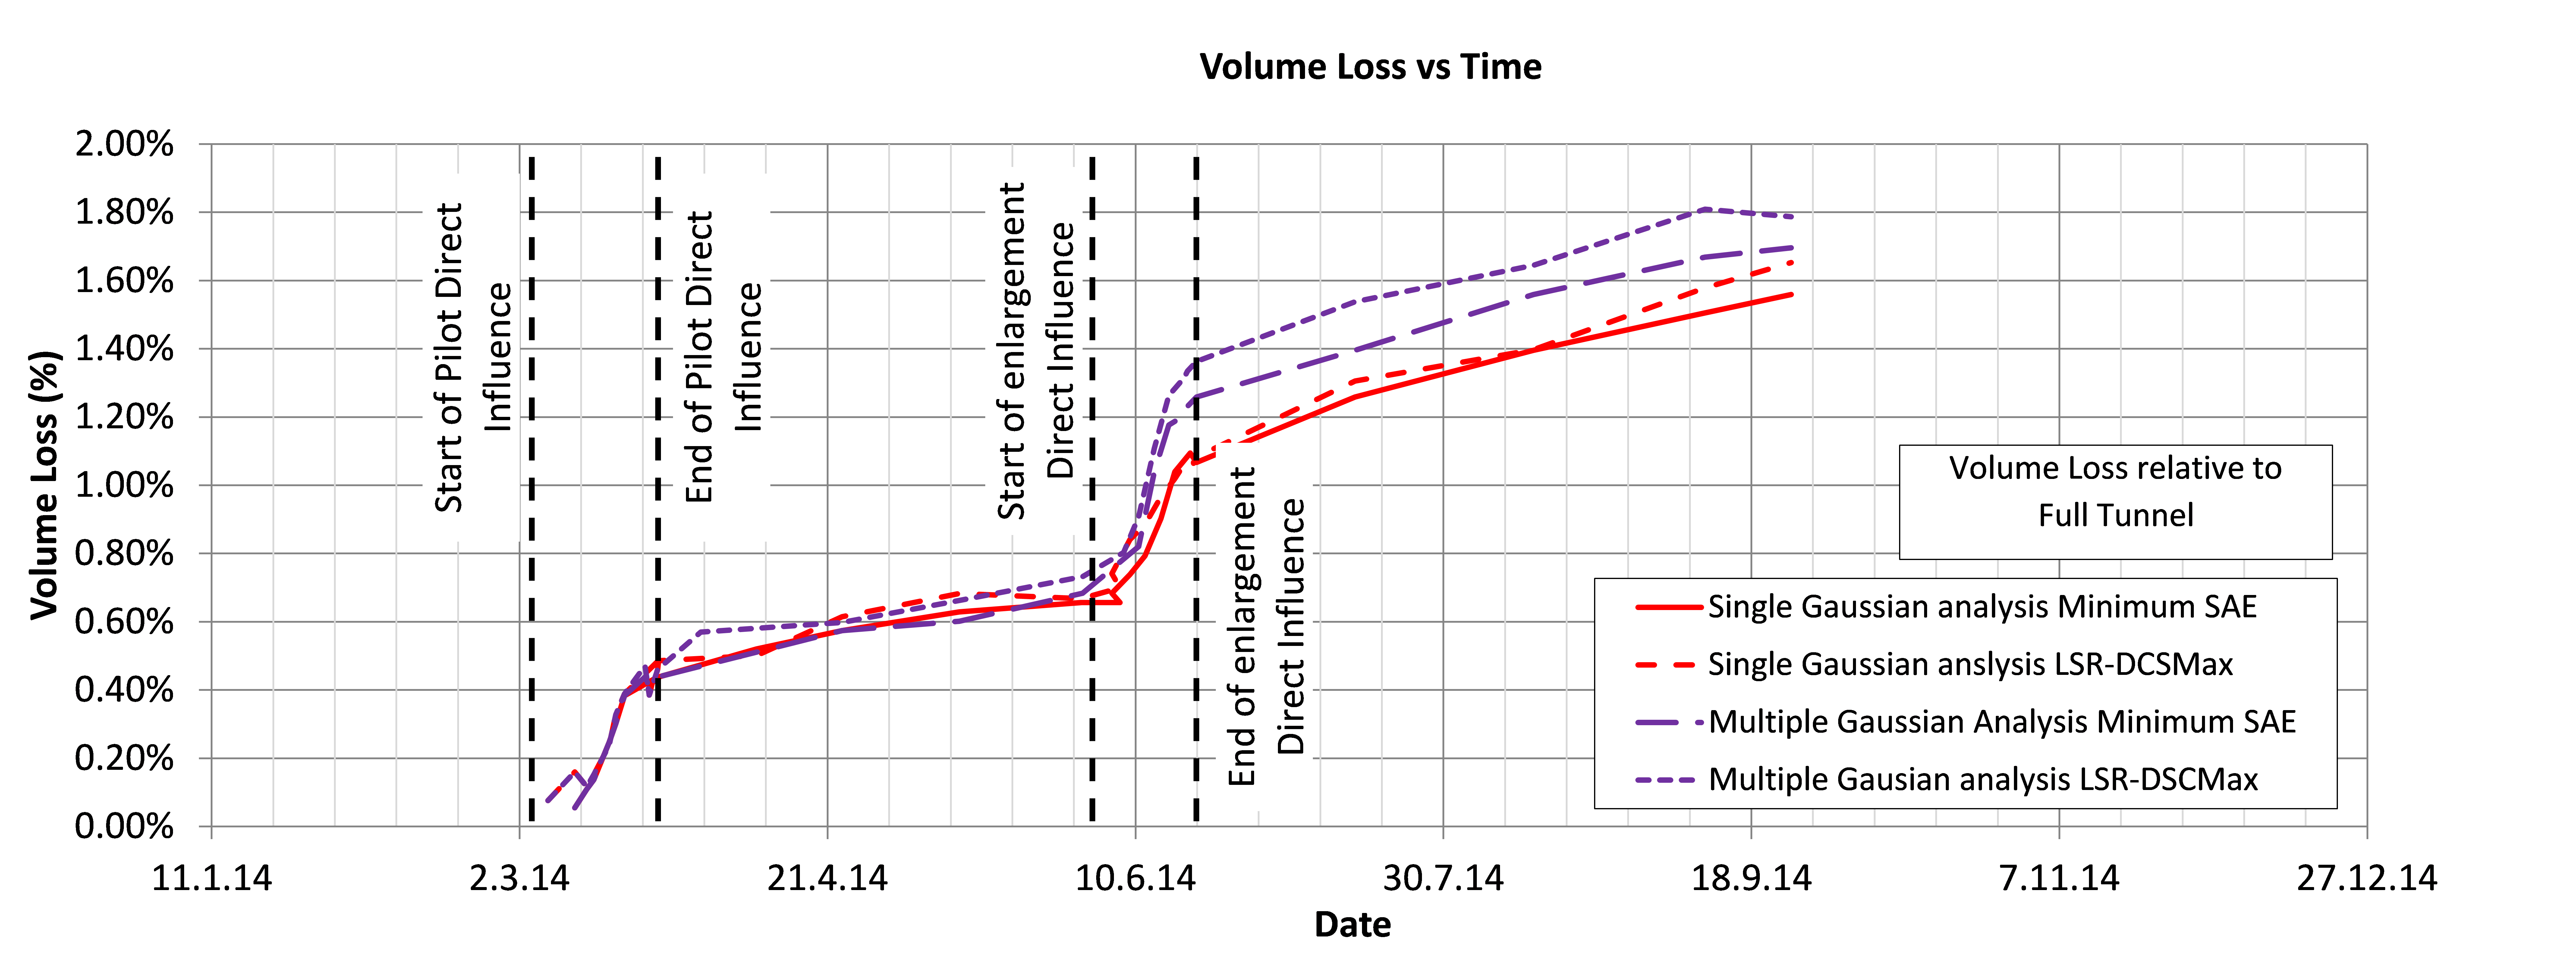 Figure 42. Cumulative volume loss for the Vallance Road array